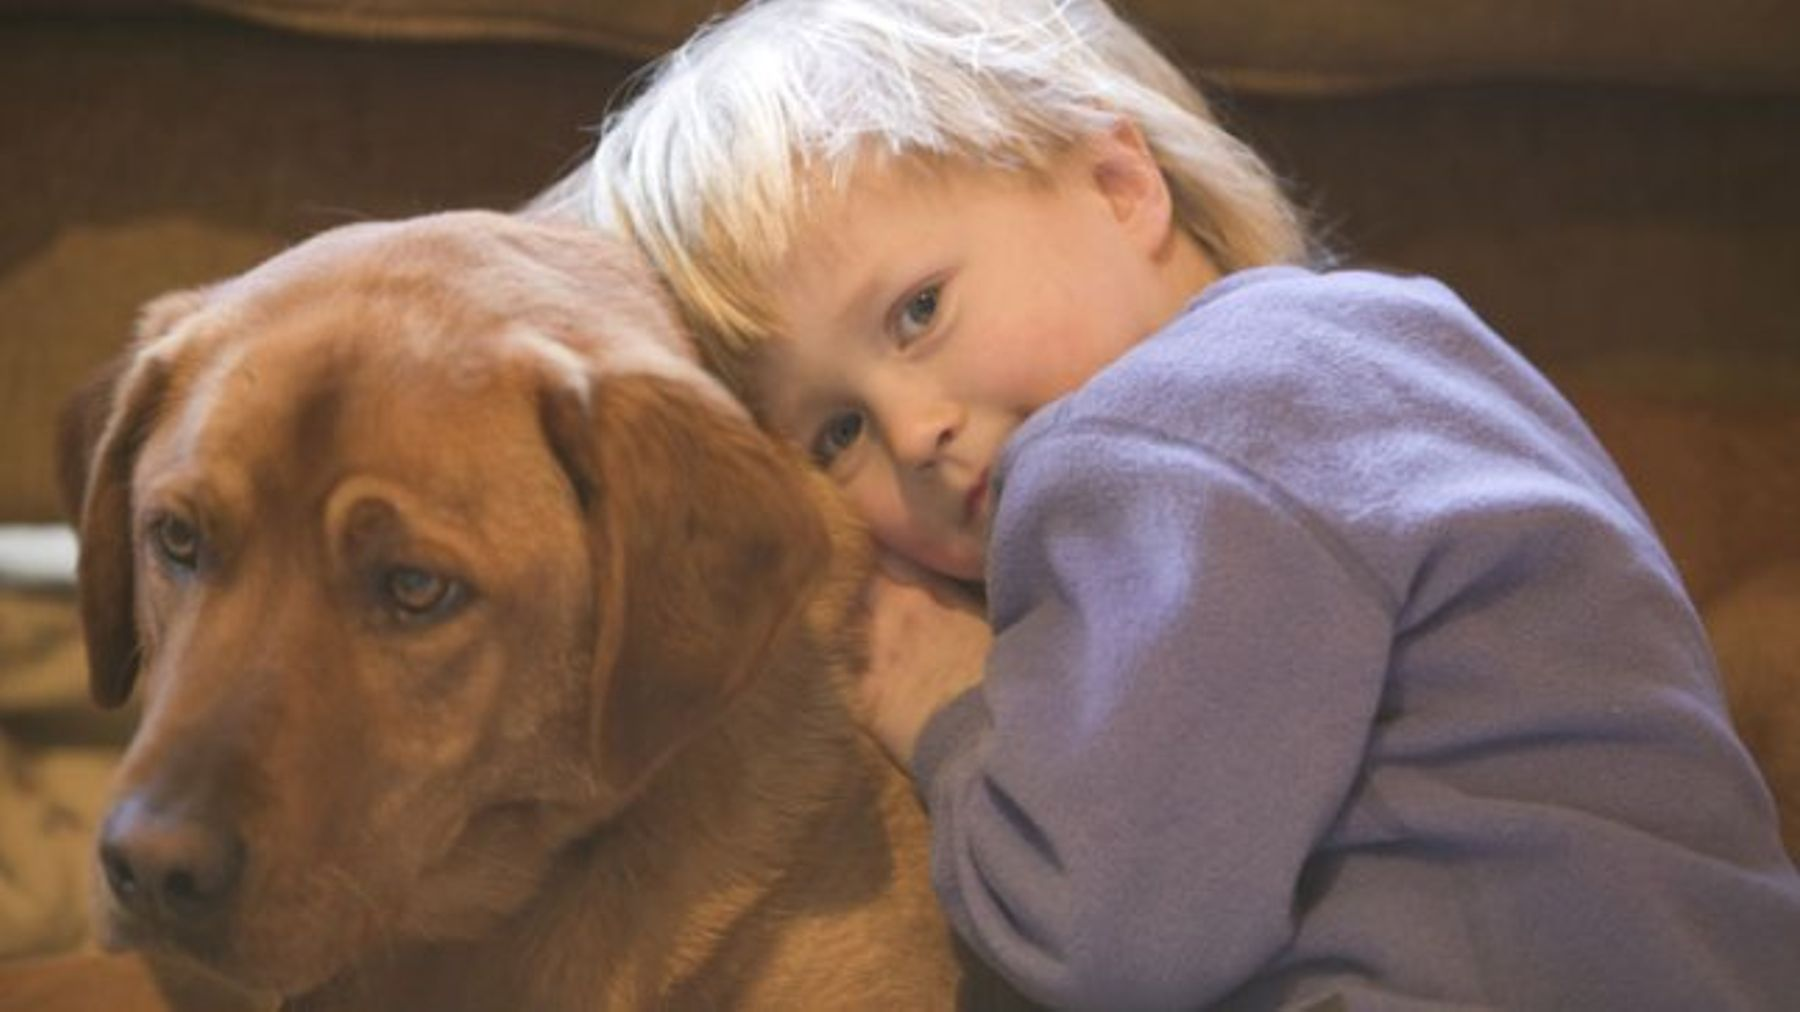 When a 6-year-old boy had to say goodbye to his pet dog, his